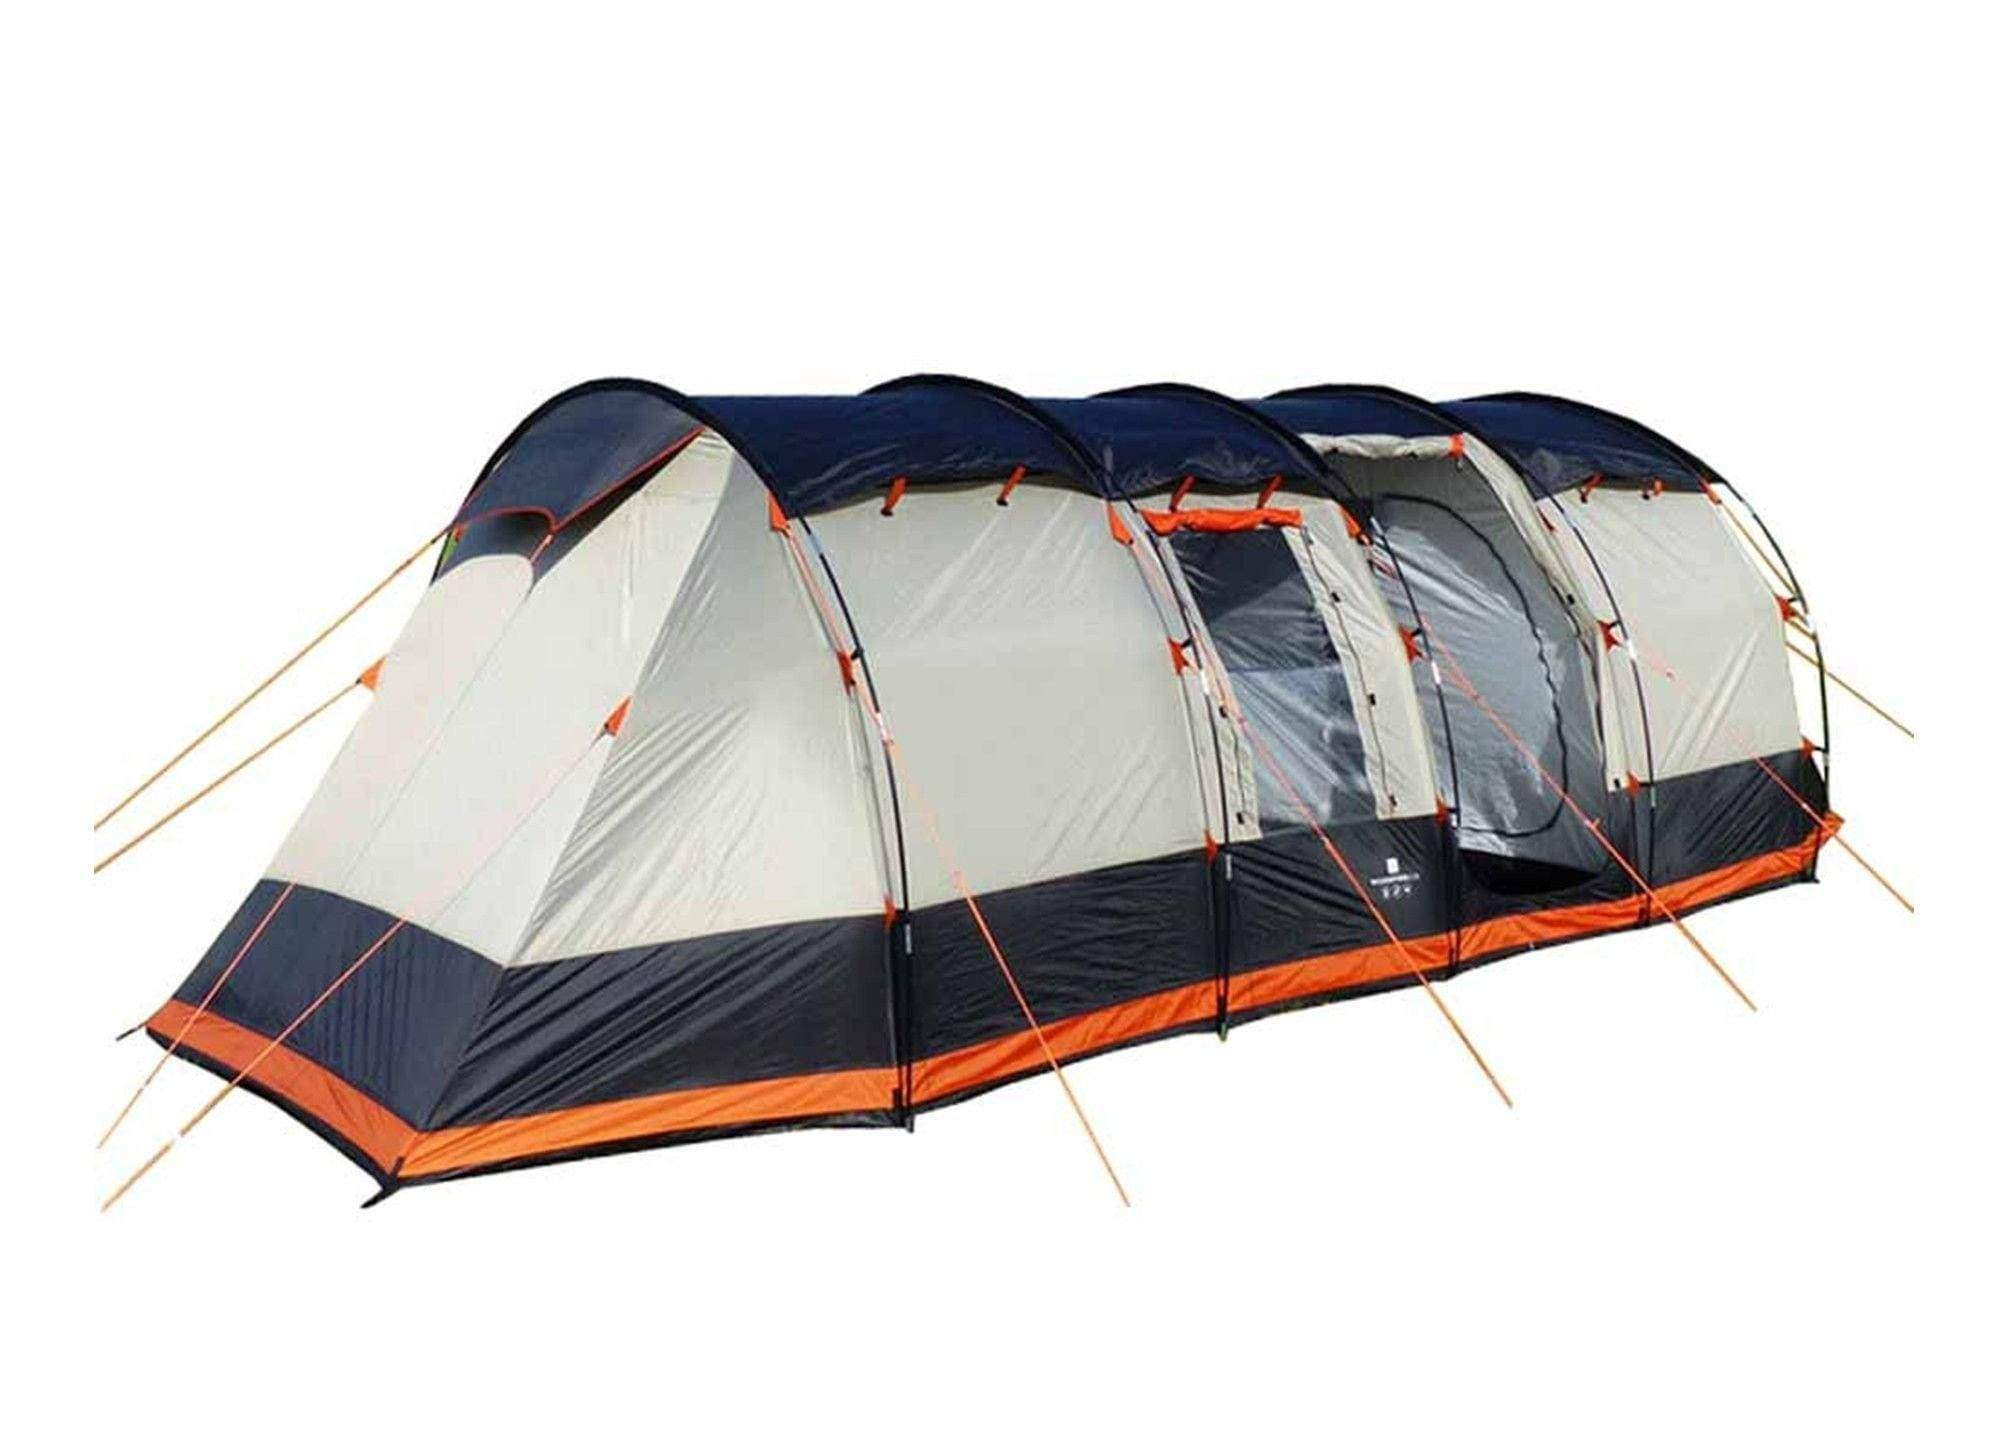 OLPRO The Wichenford 3.0 8 Berth Tent